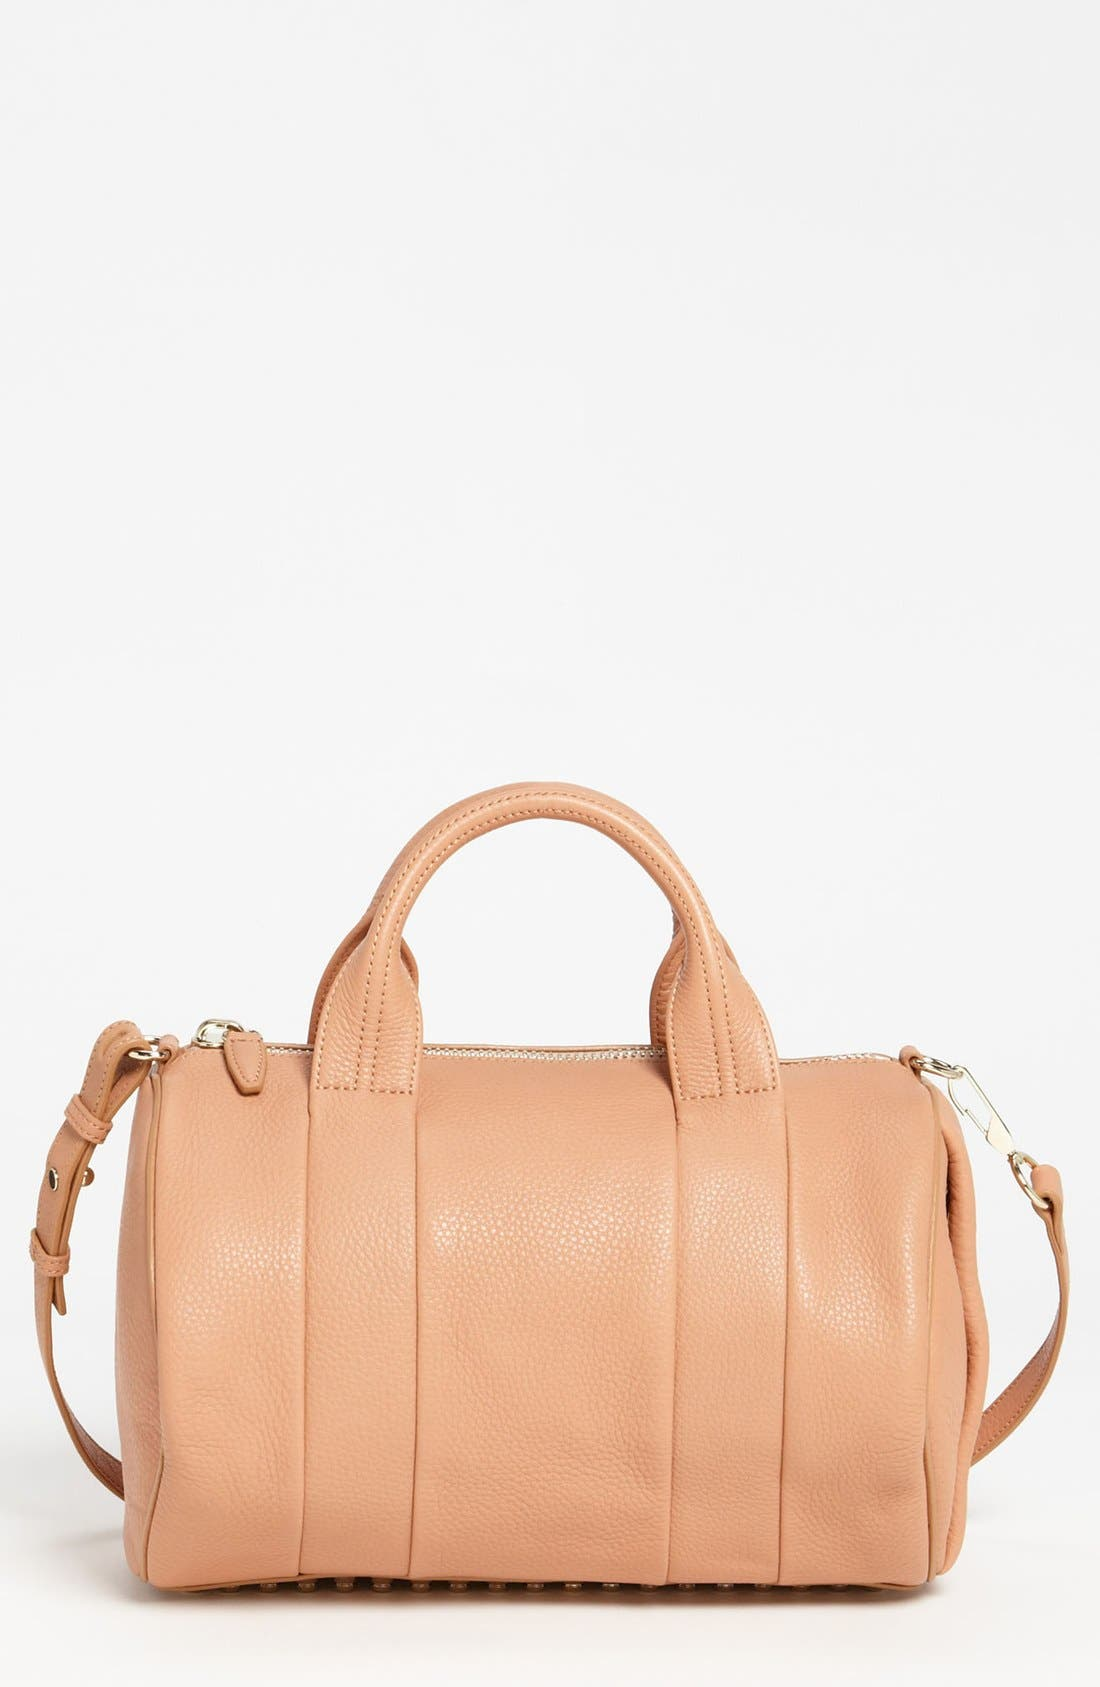 Main Image - Alexander Wang 'Rocco' Leather Satchel